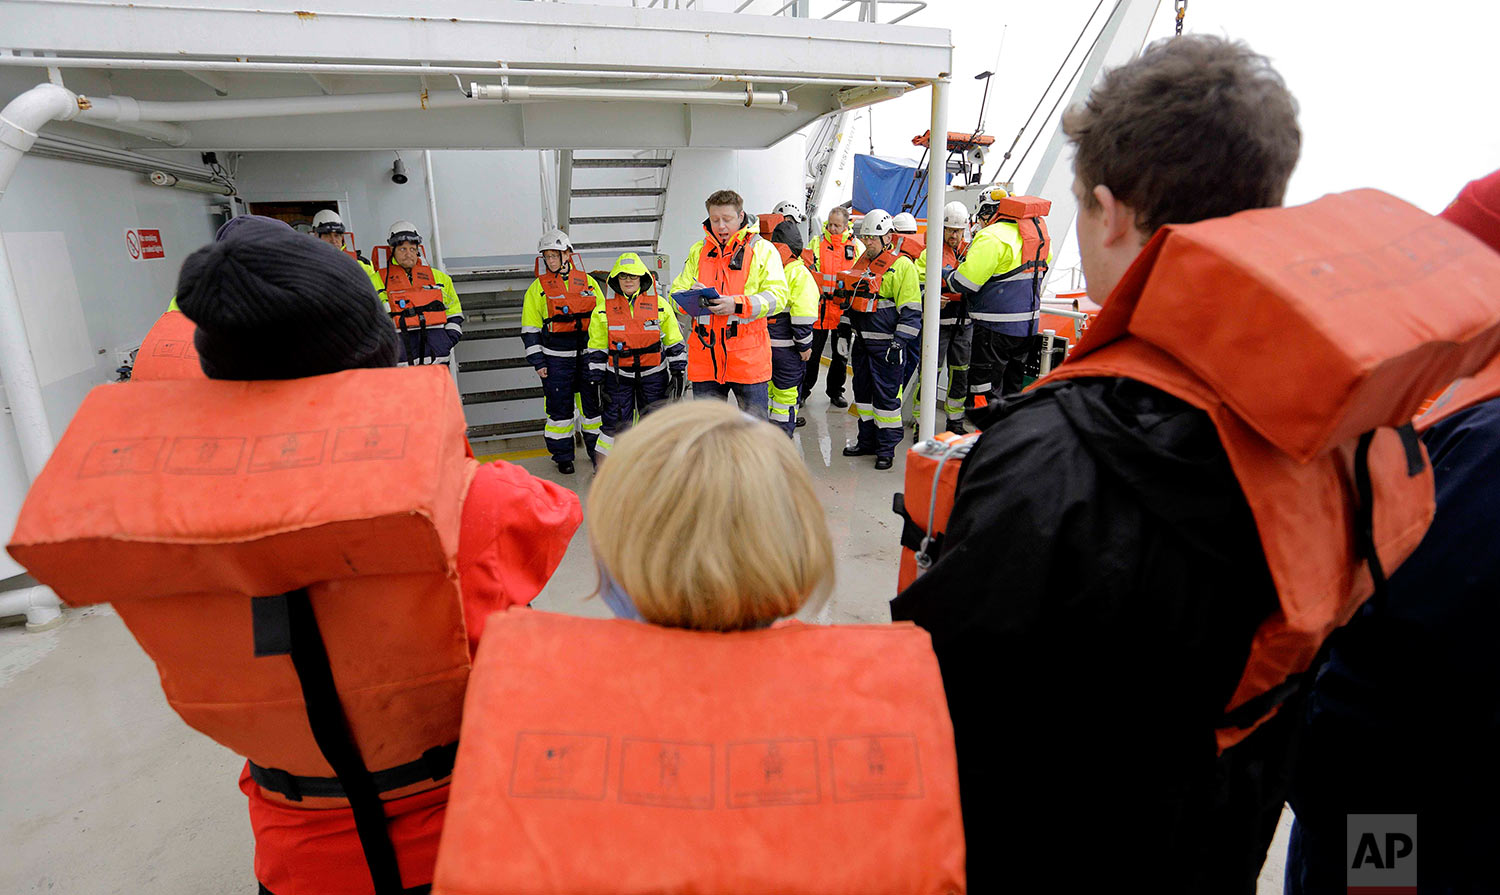 Second officer Ilkka Alhoke, center, conducts a safety drill aboard the Finnish icebreaker MSV Nordica as it sails through Barrow Strait while traversing the Northwest Passage through the Canadian Arctic Archipelago, Sunday, July 23, 2017. (AP Photo/David Goldman)